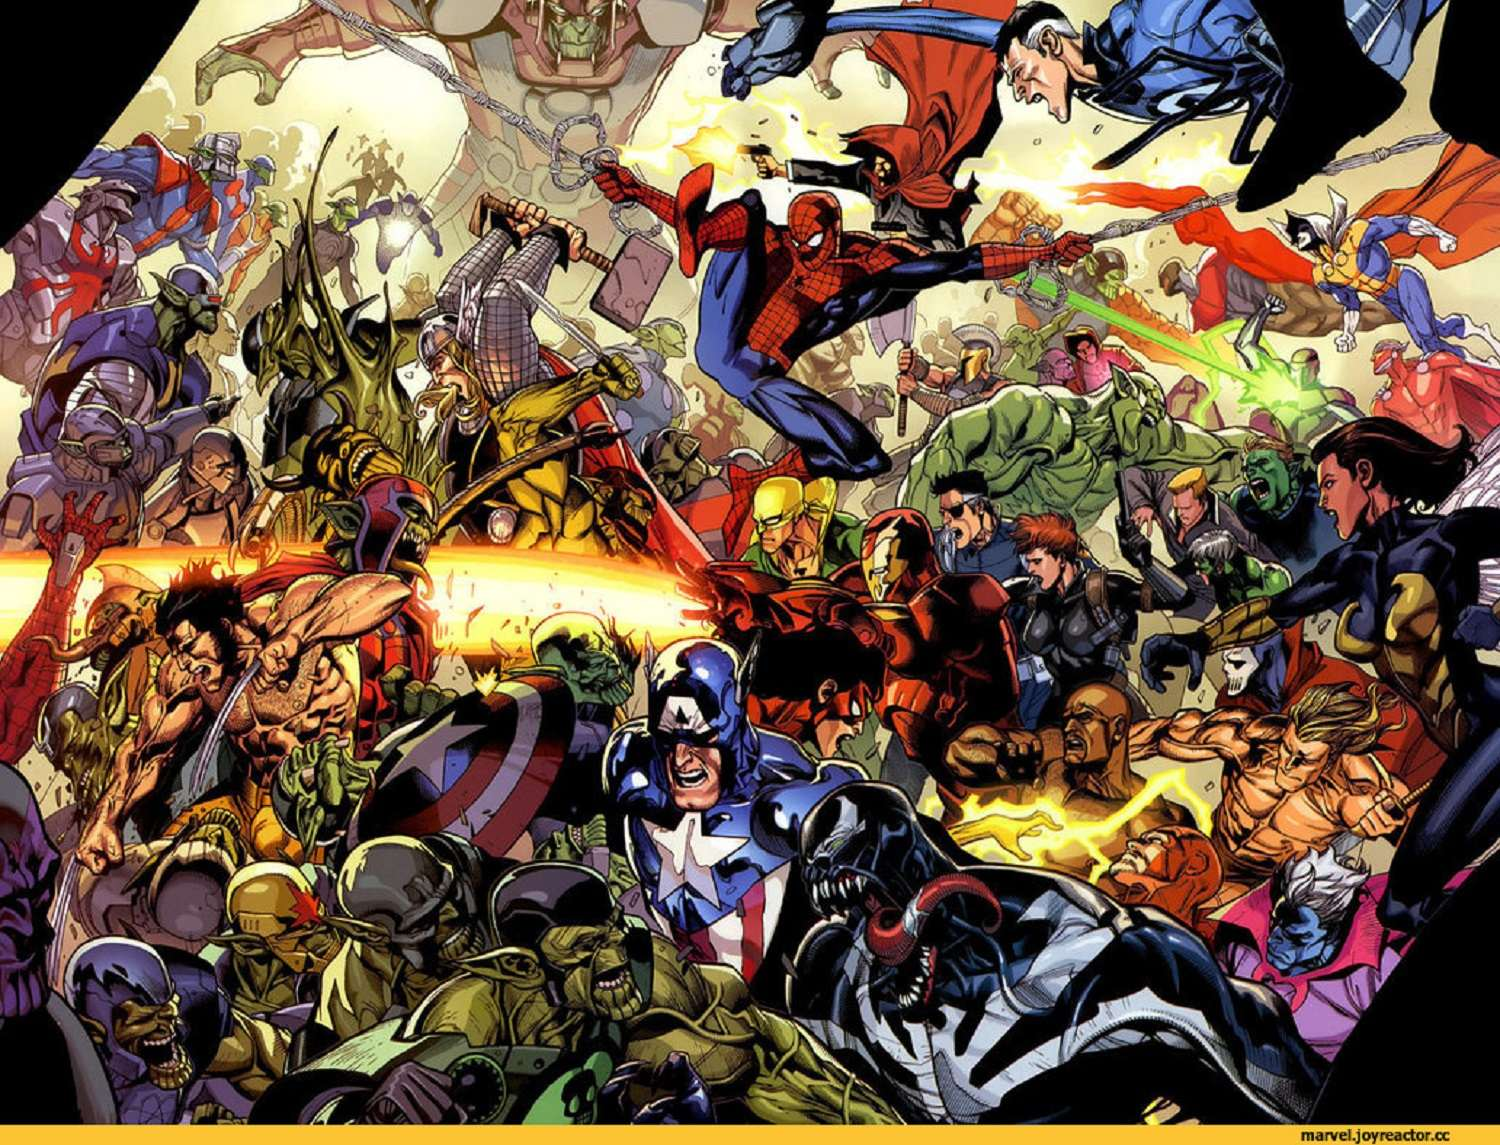 secret-invasion-marvel-d184d18dd0bdd0b4d0bed0bcd18b-966213